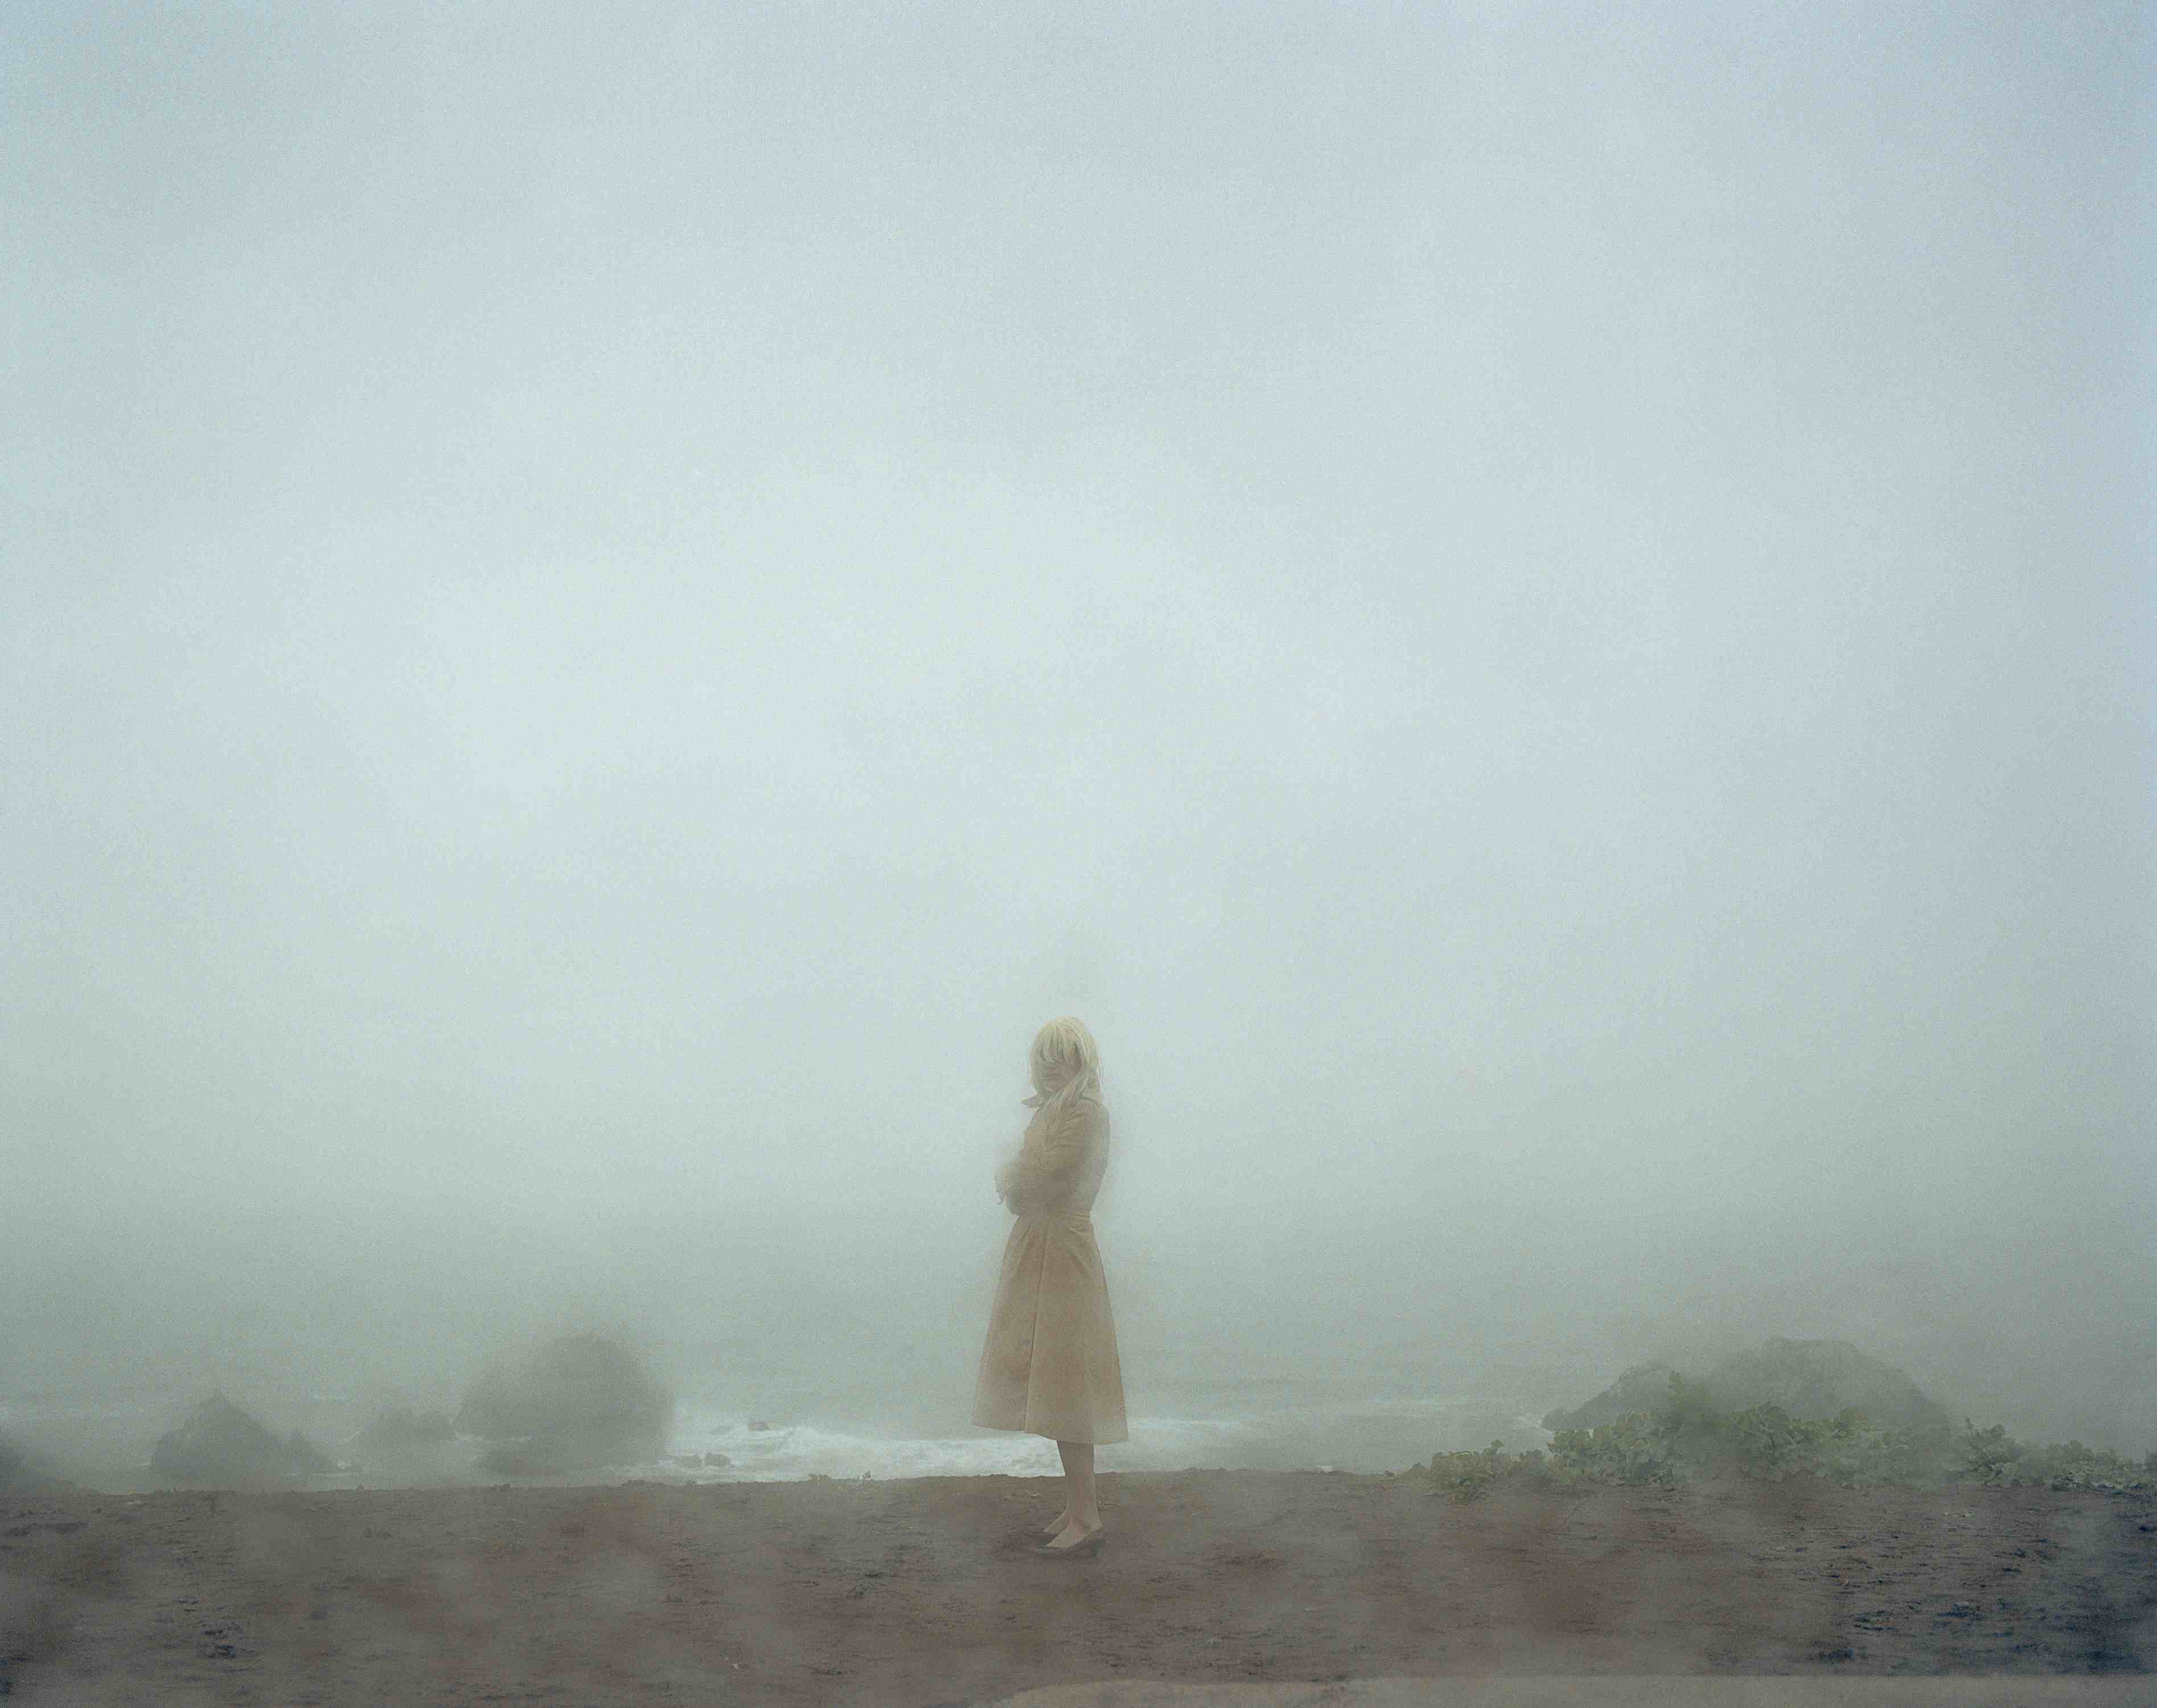 HD_Eyes_in_Progress_Image_libre_droit_ToddHido1